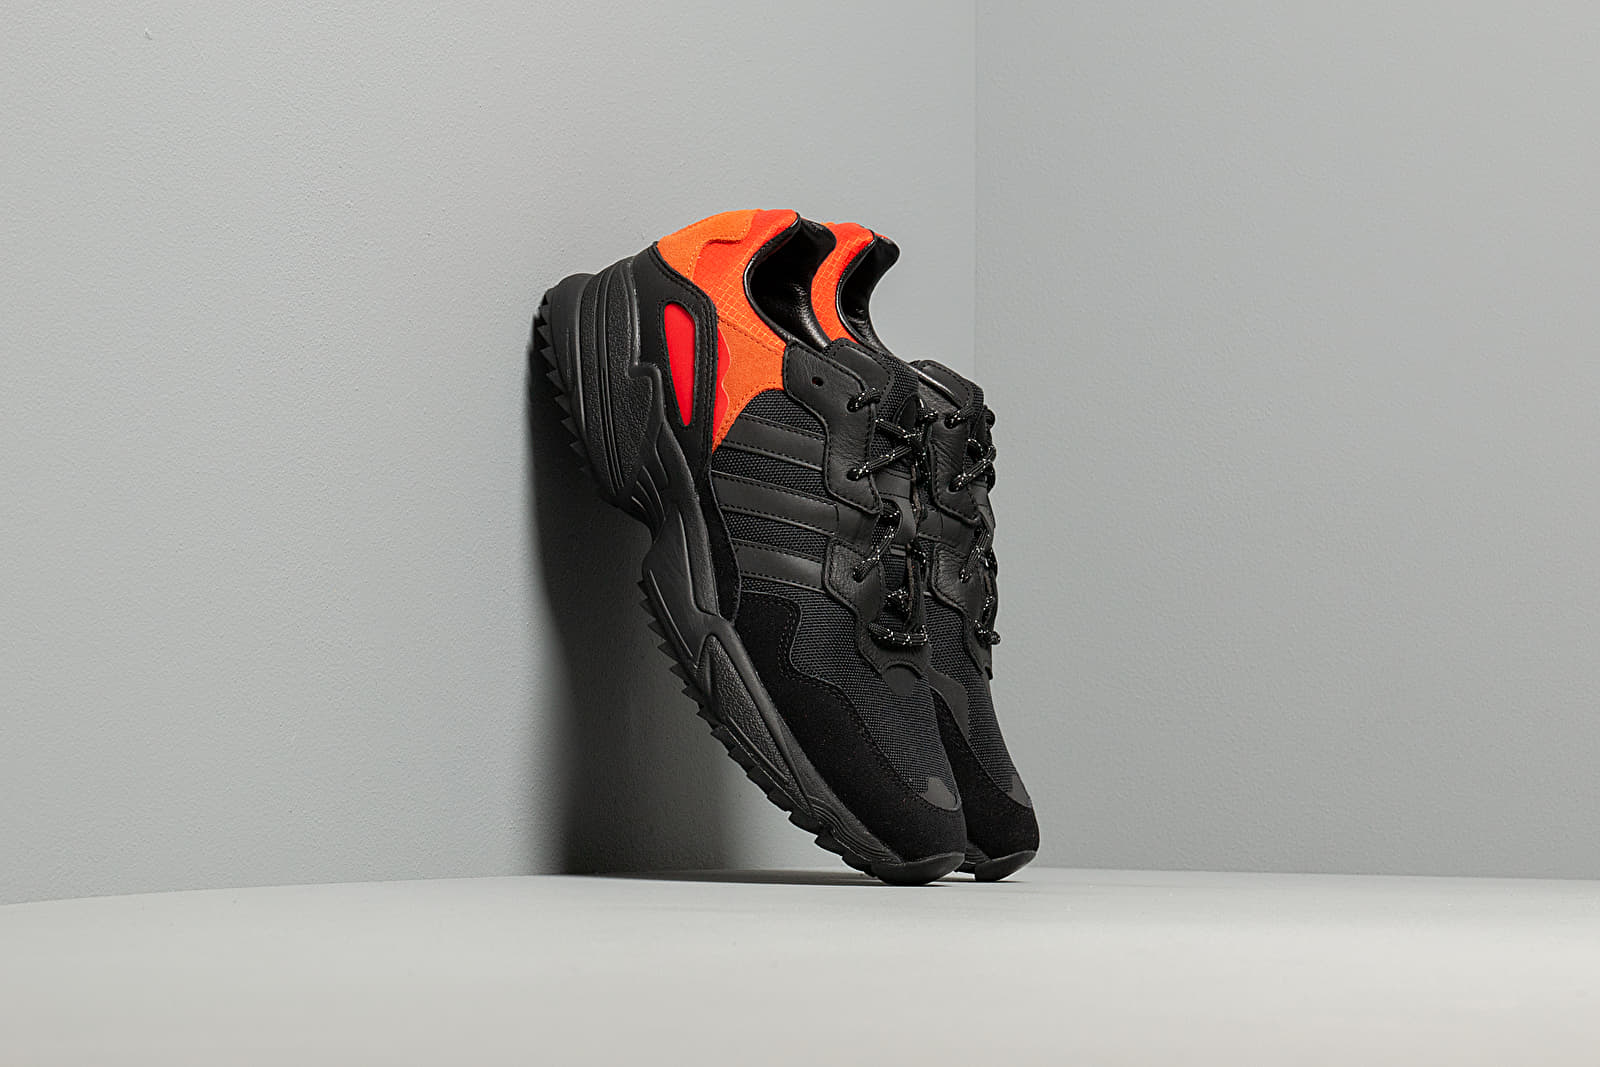 Ανδρικά παπούτσια adidas Yung-96 Trail Core Black/ Trace Green Metalic/ Flace Orange